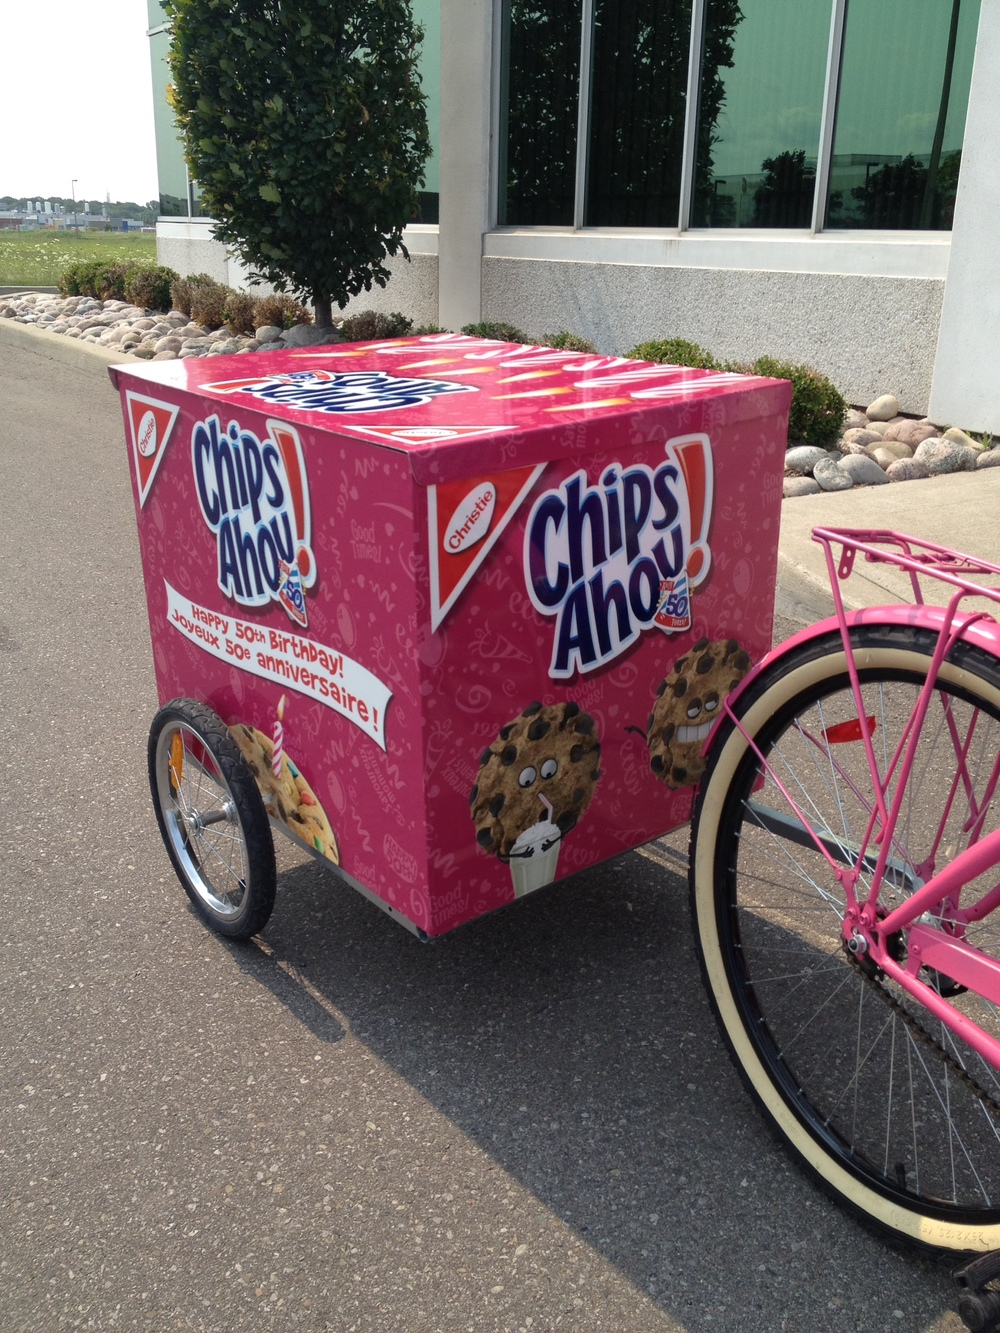 Chips Ahoy bike trailer wrap